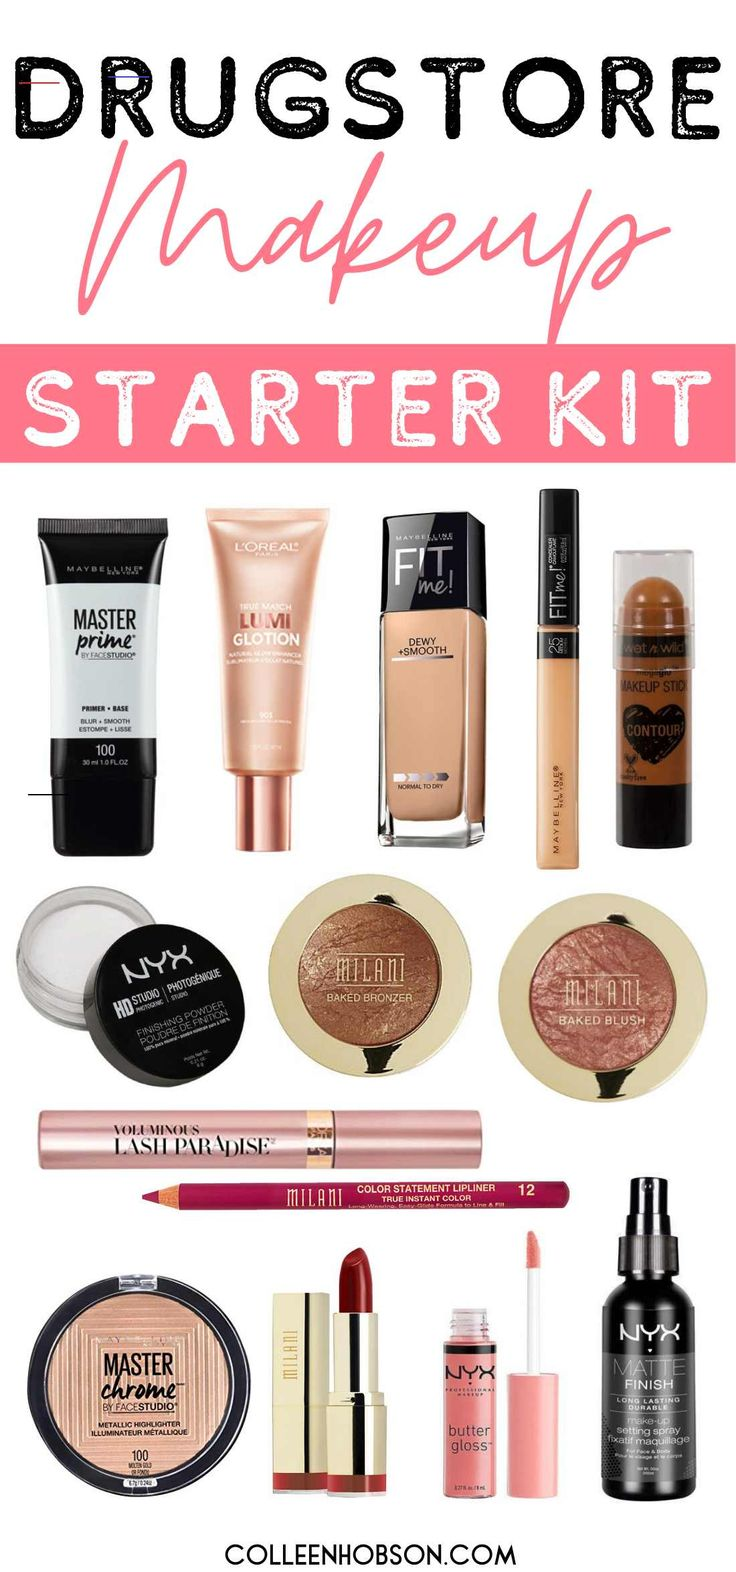 Complete Drugstore Makeup Starter Kit for 100 Makeup